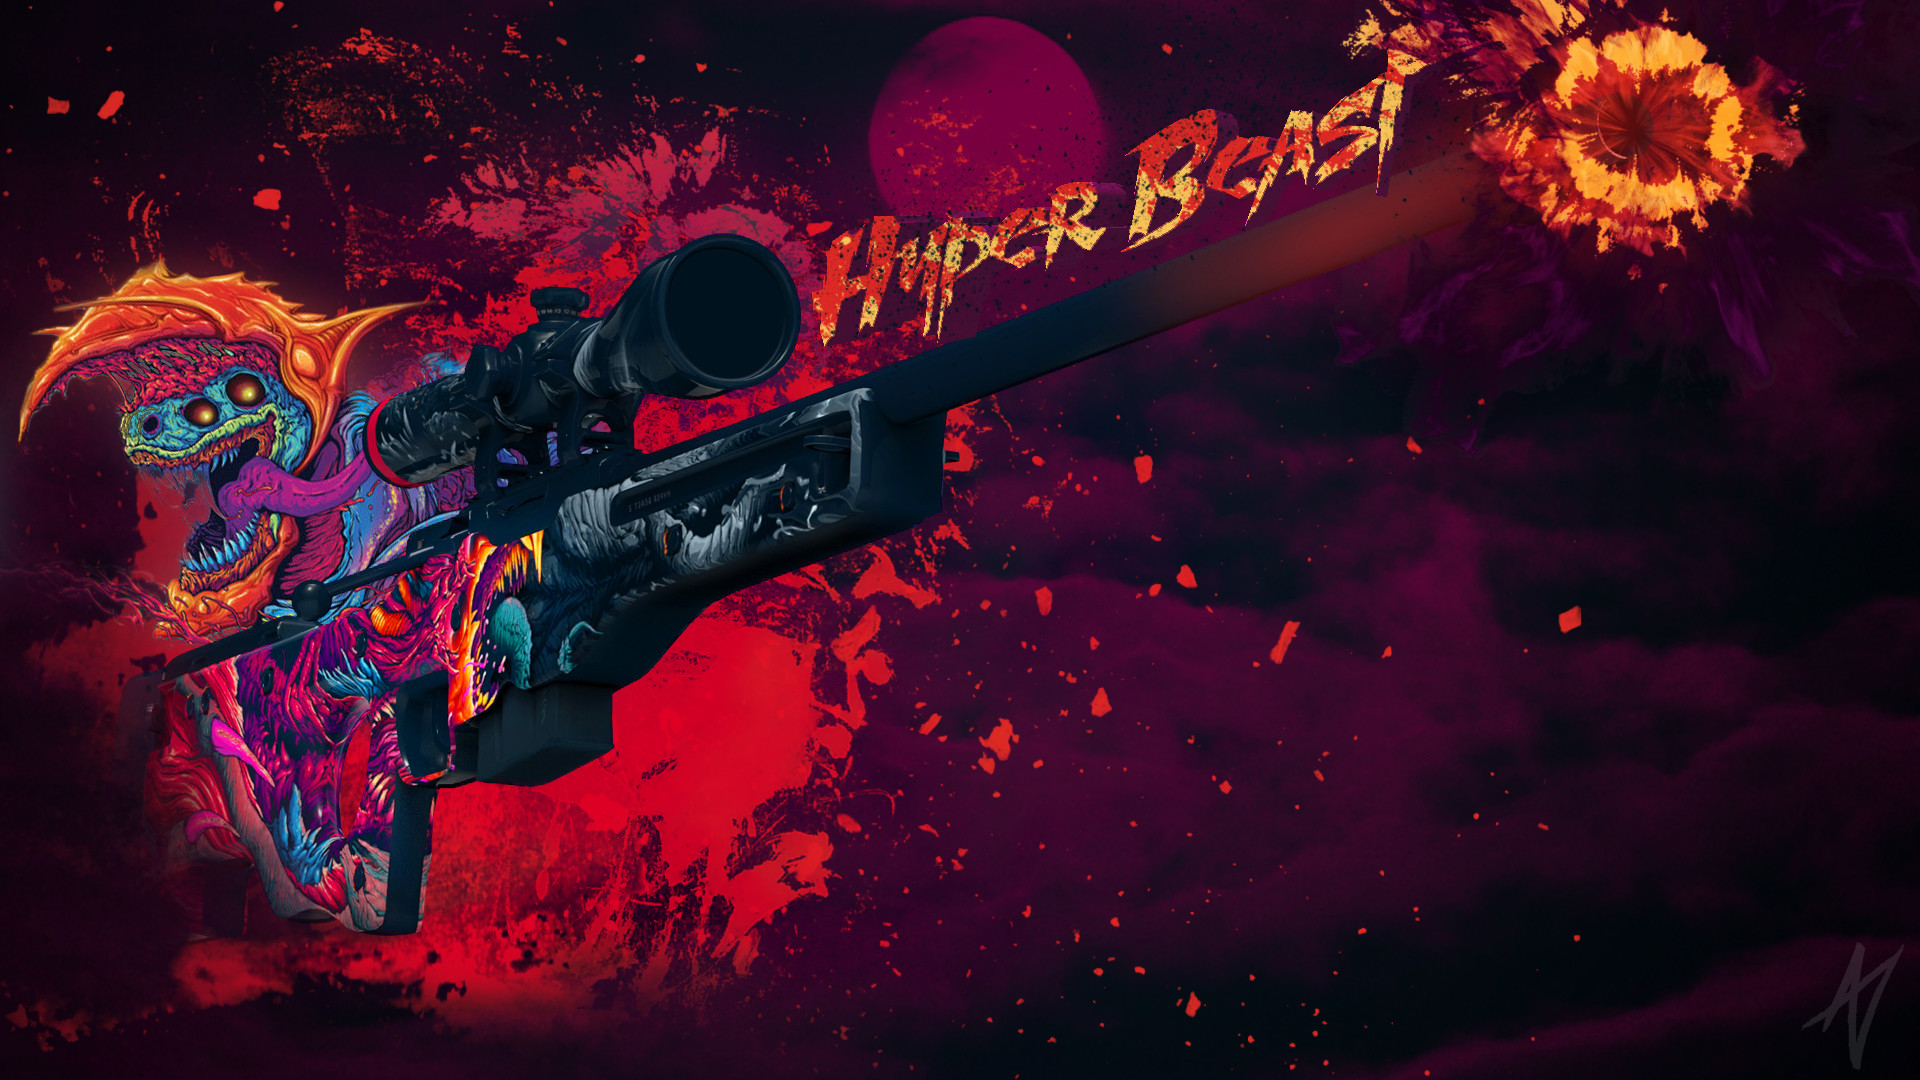 Lion Live Wallpaper Iphone X Counter Strike Global Offensive Wallpapers 83 Images